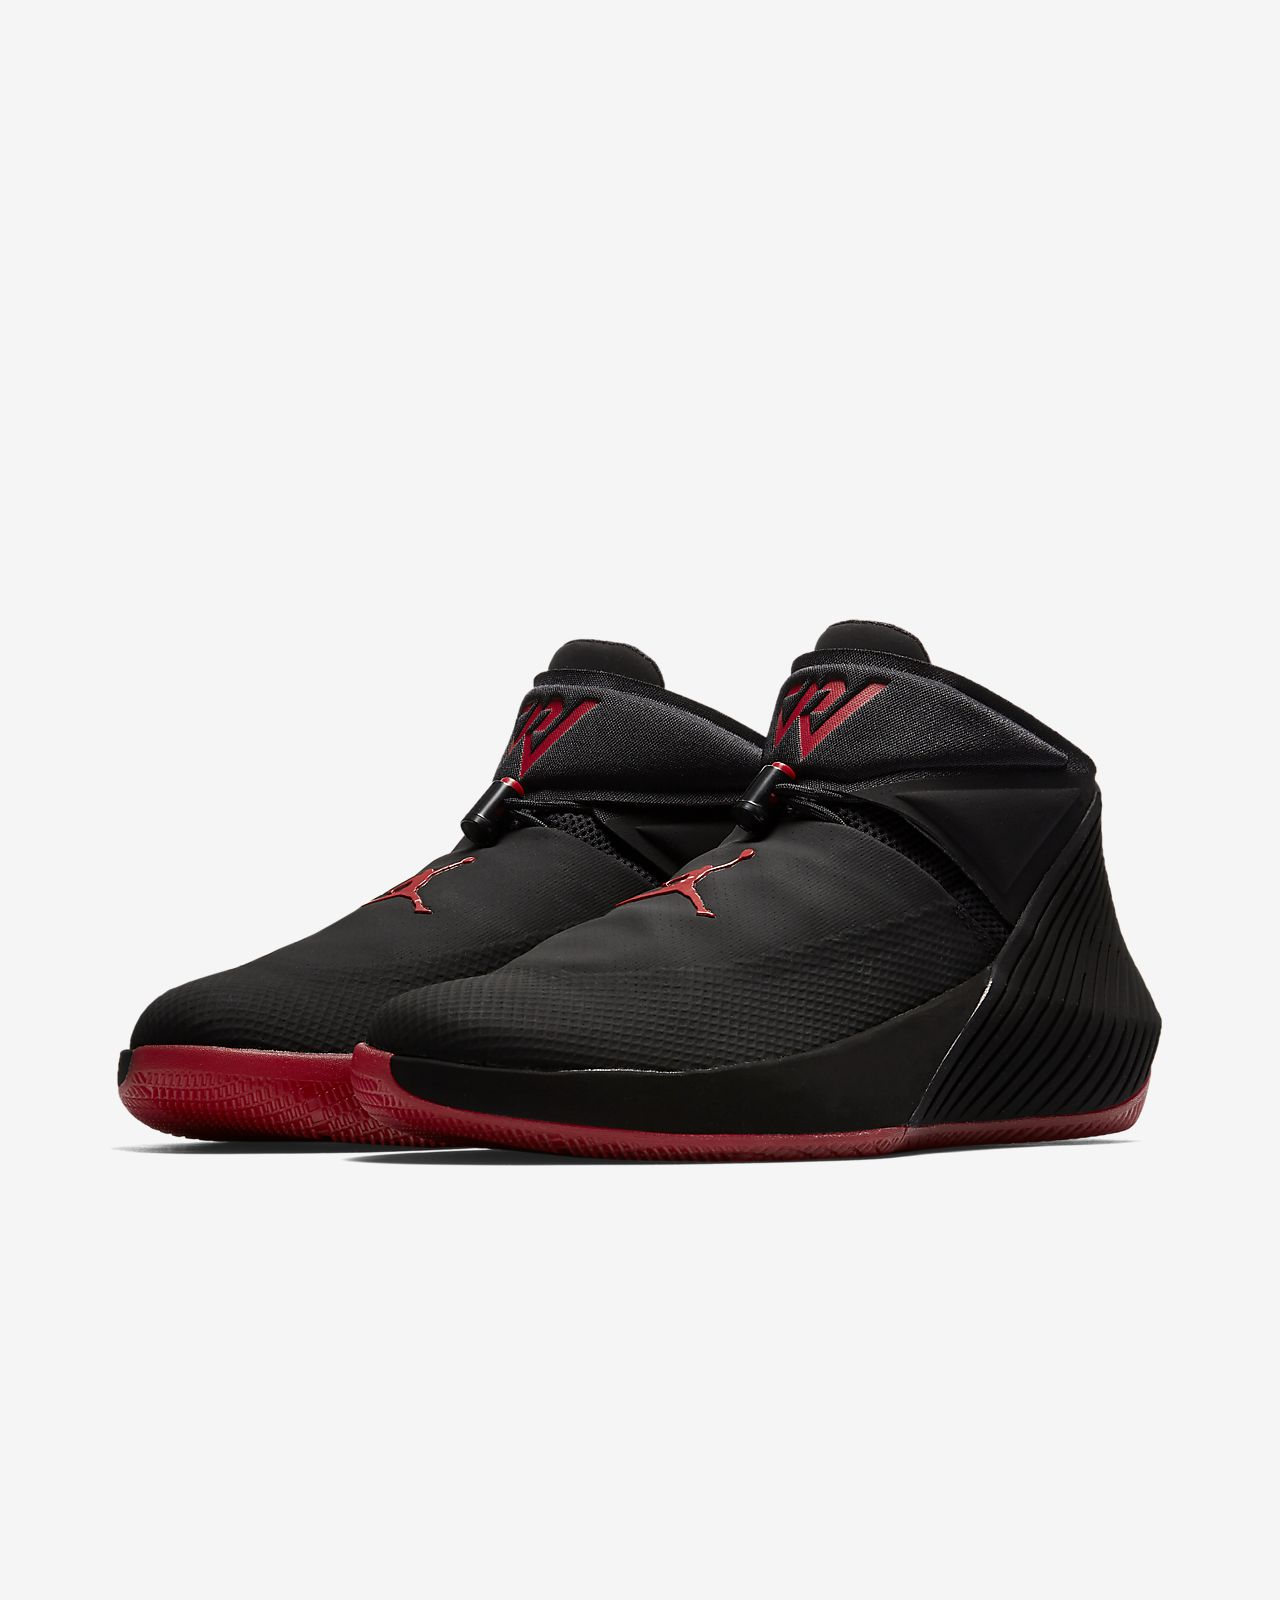 jordan why not shoes zer0.1 10.5